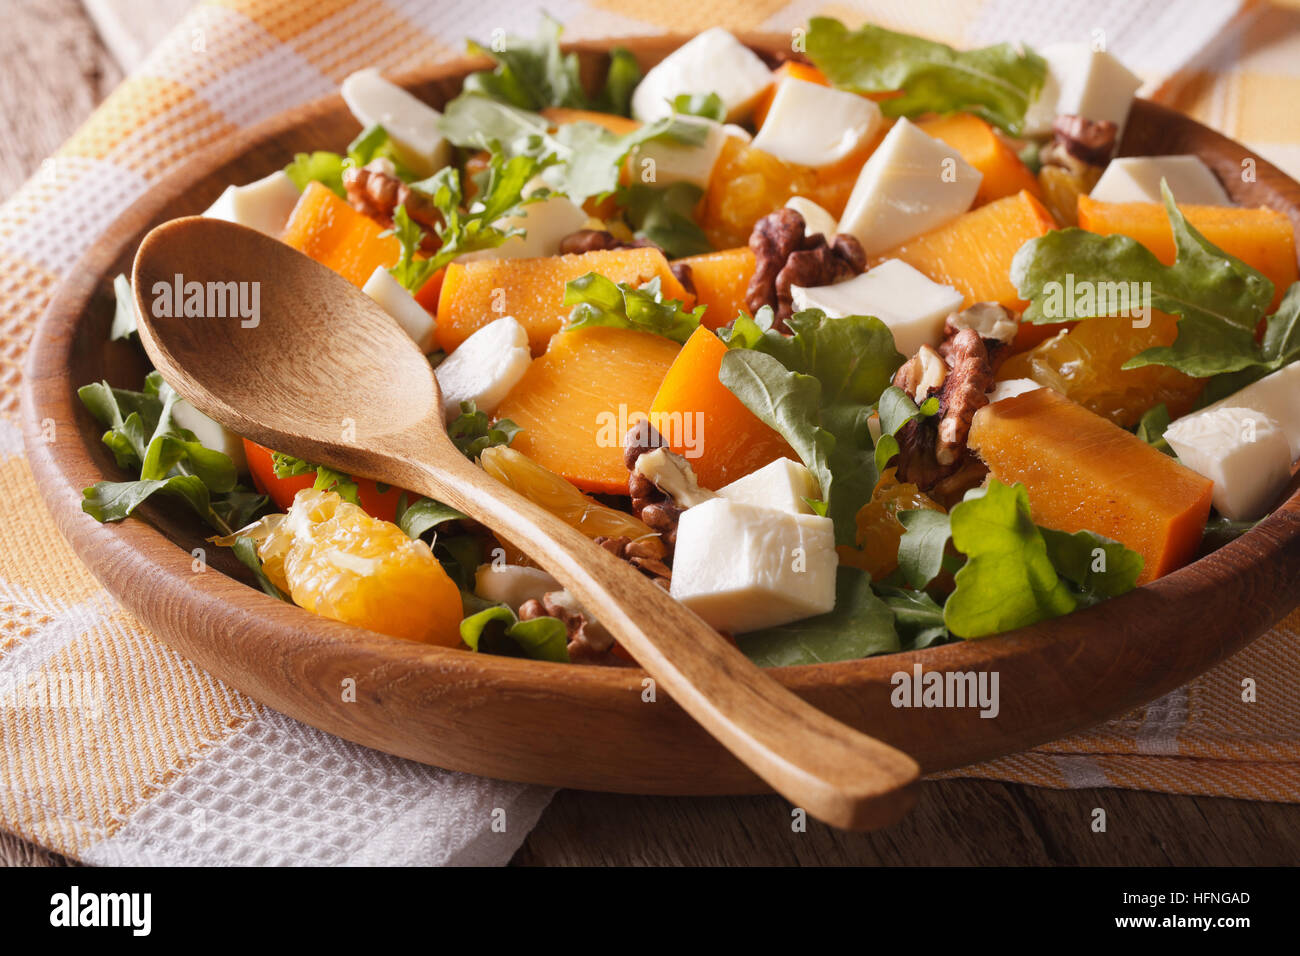 Fresh salad with persimmons, walnuts, arugula, cheese and oranges close-up. Horizontal, rustic Stock Photo